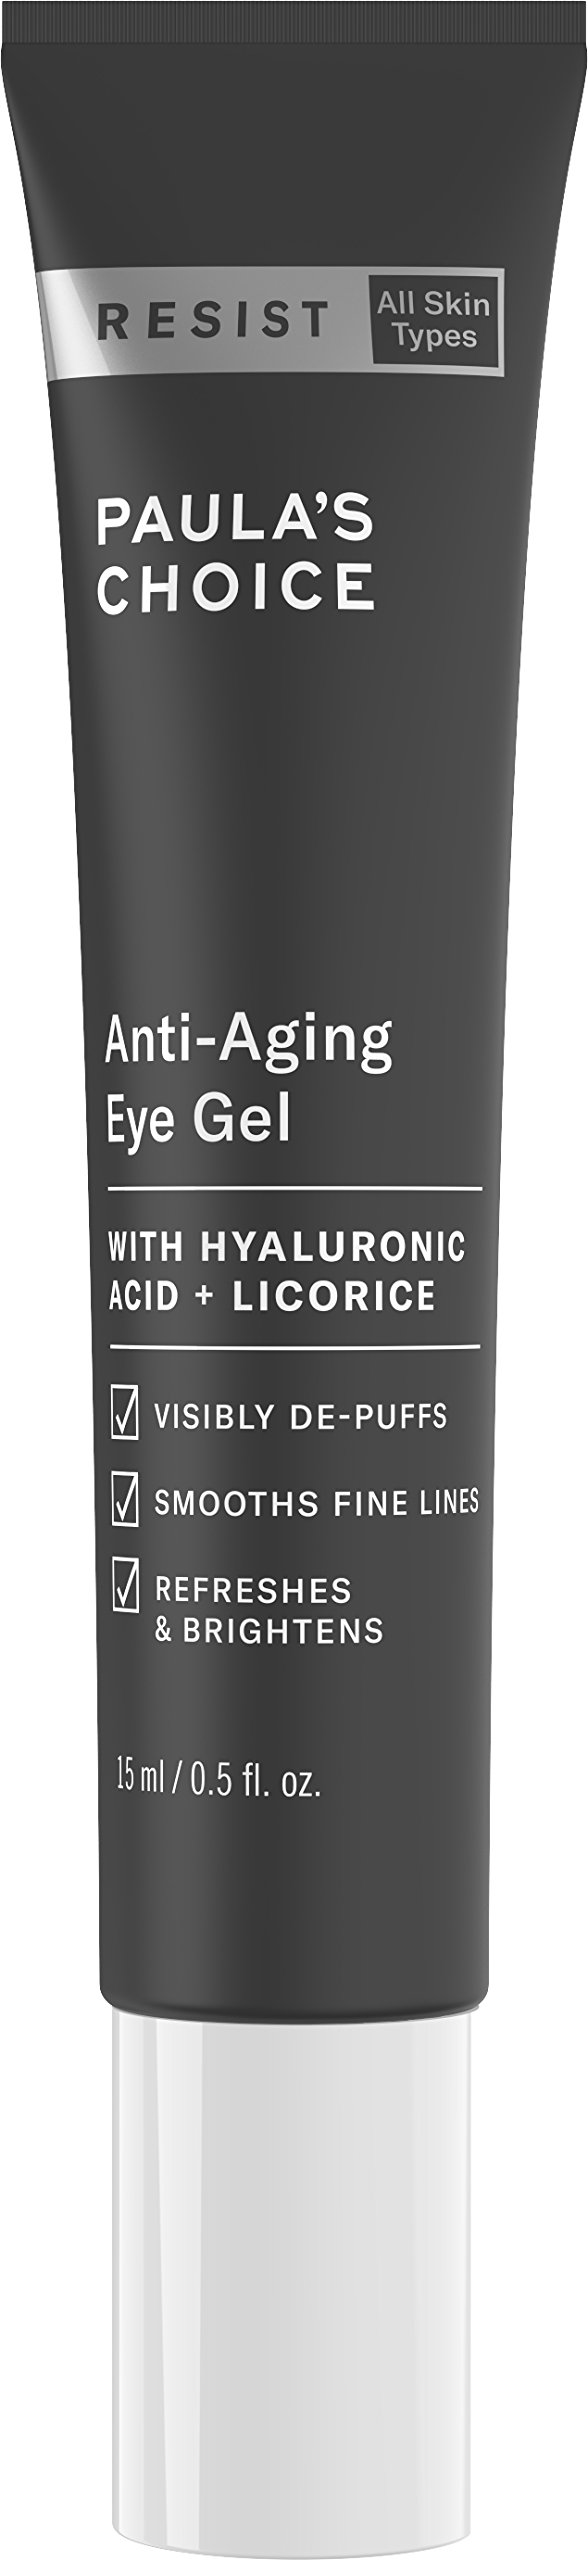 Paula's Choice RESIST Anti-Aging Eye Gel w/Hyaluronic Acid, 0.5 oz Tube Soothing Treatment for Fine Lines and Puffiness in the Under Eye Area